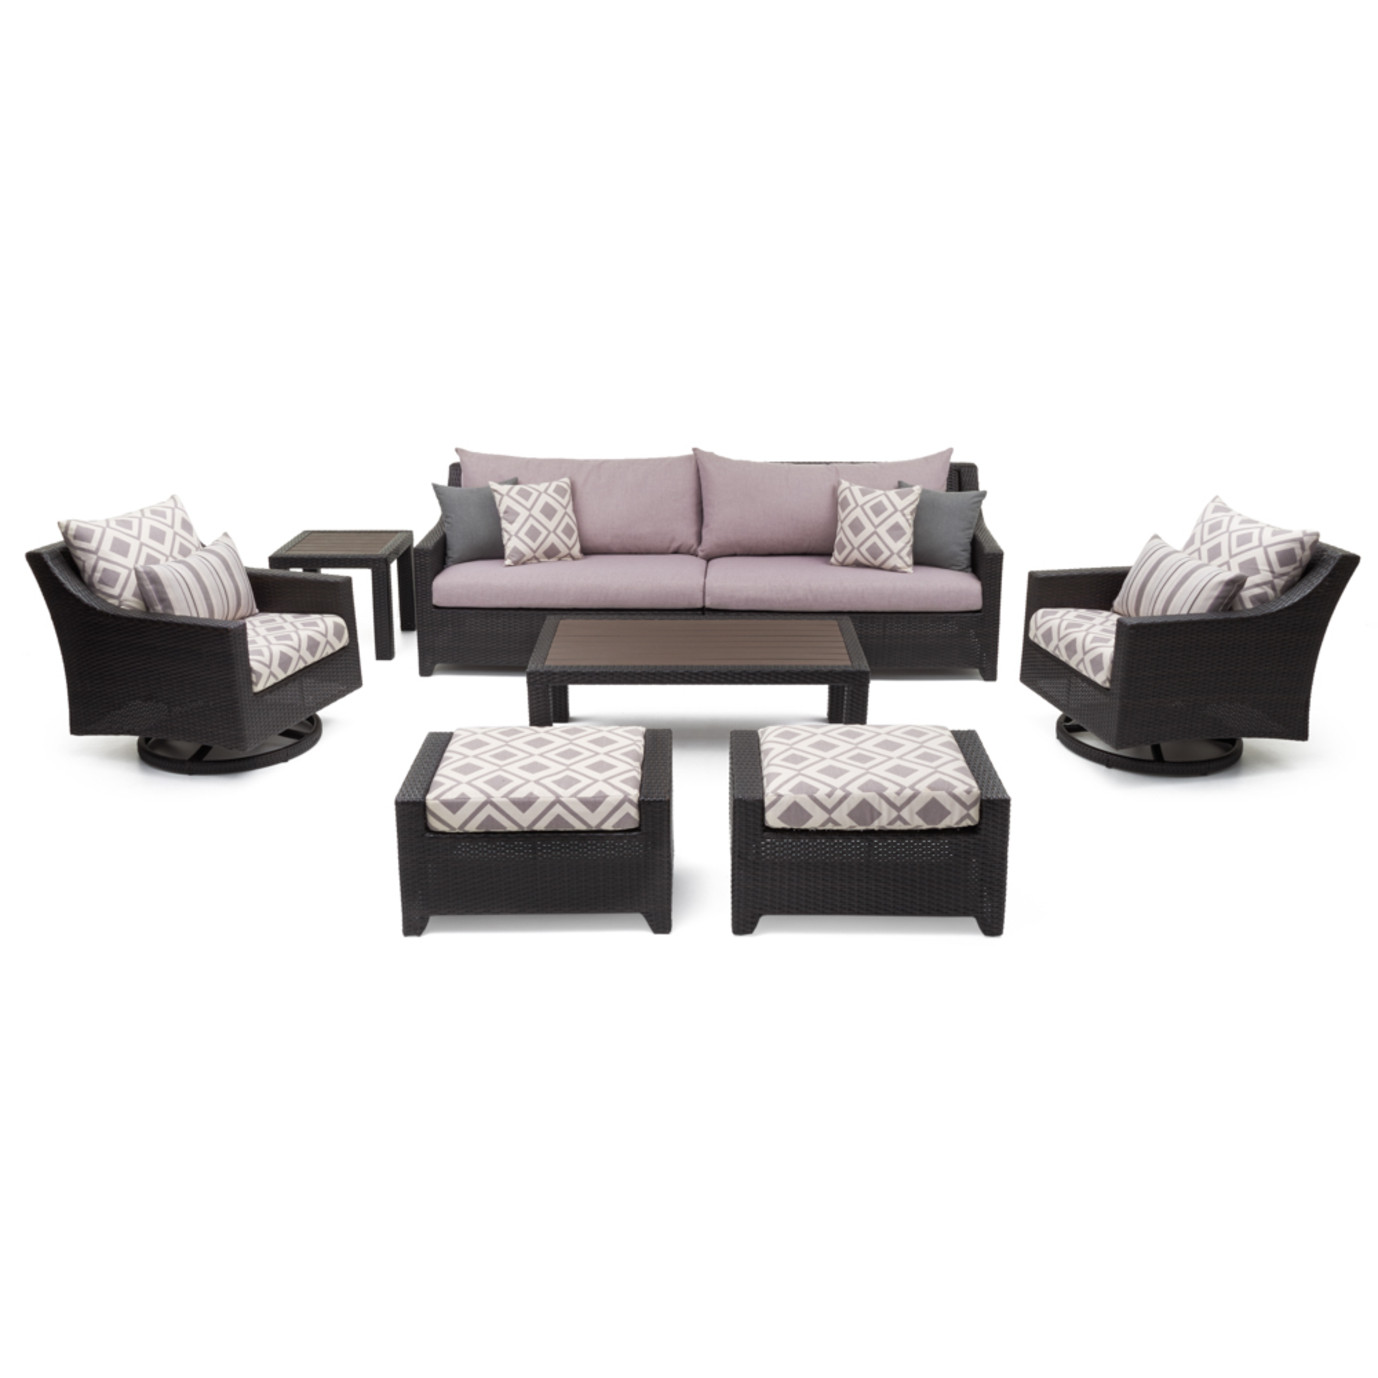 Deco™ 8pc Sofa & Club Chair Set - Wisteria Lavender Design